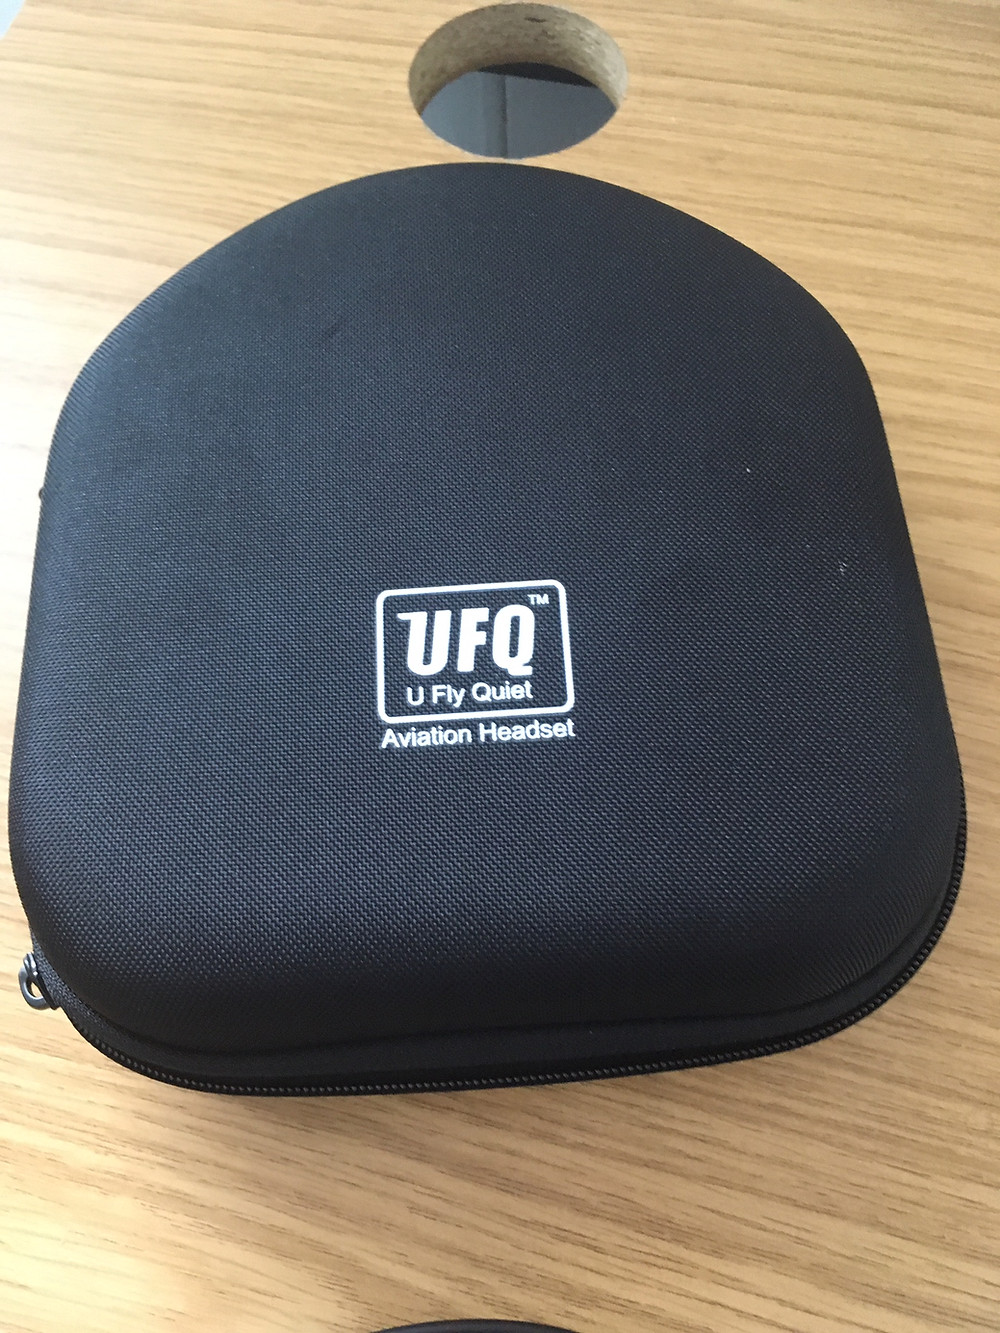 UFQ A7 U Fly Quiet Headset Review